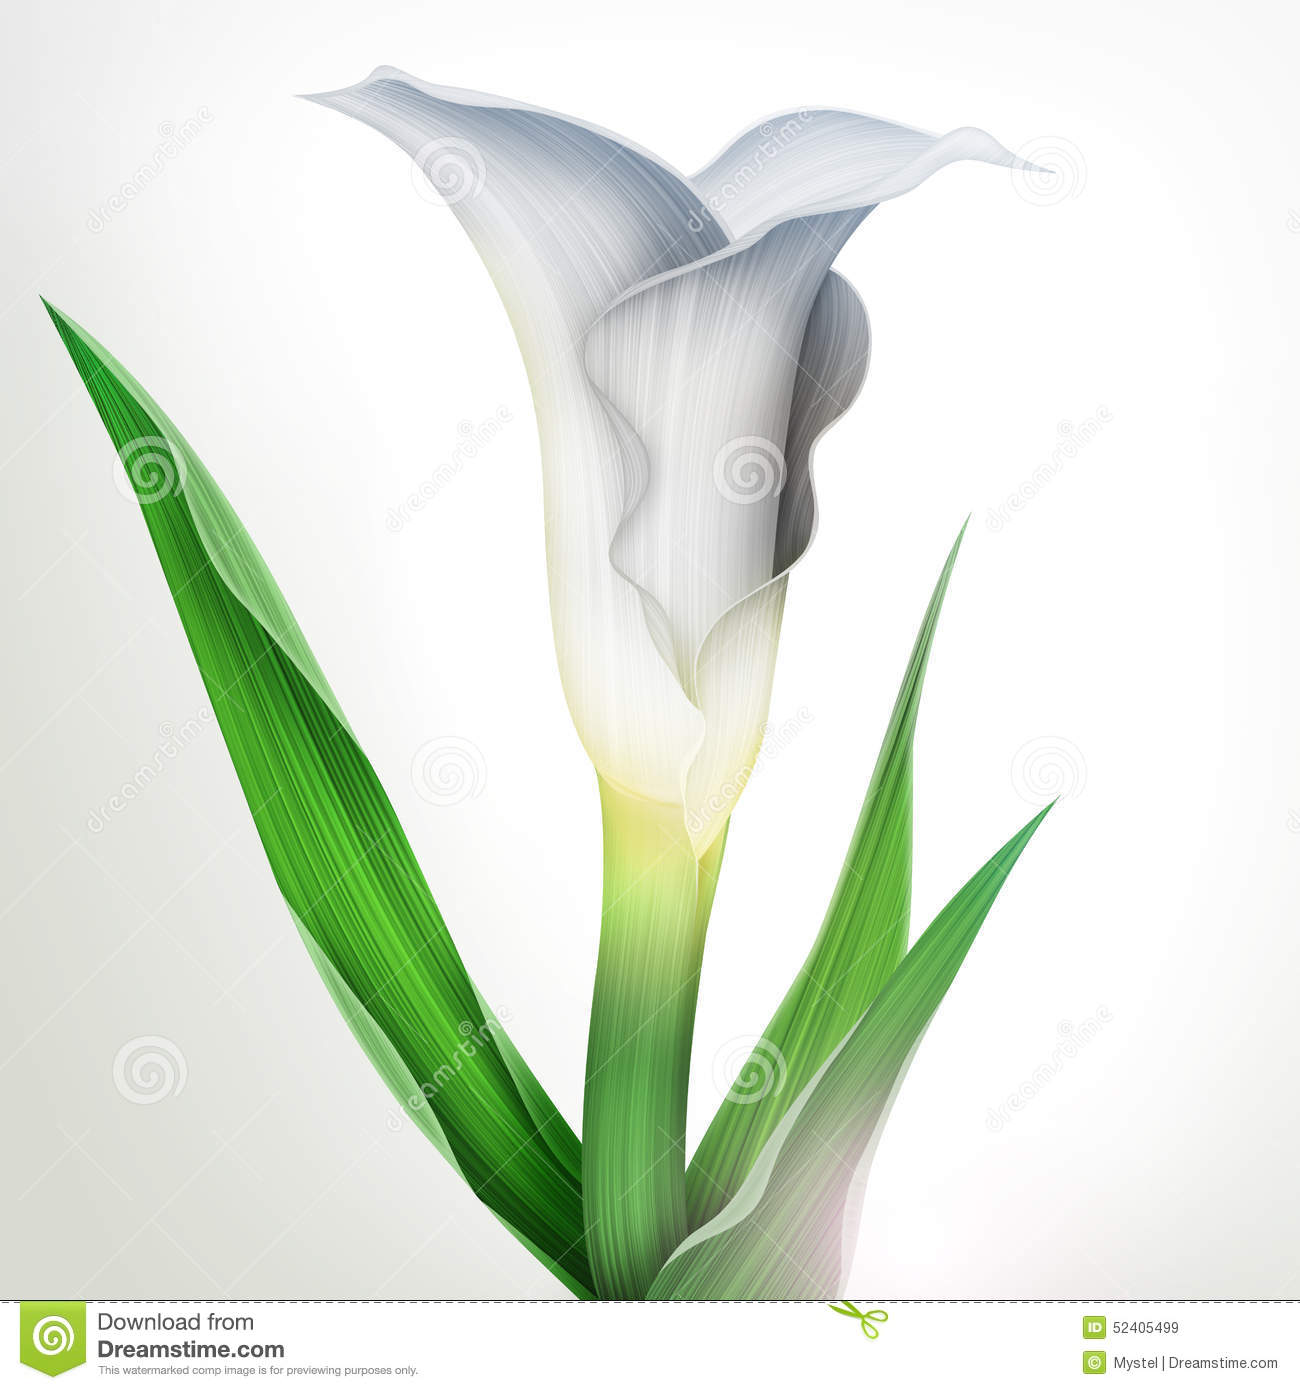 of calla lily flower and green leaves royalty free stock images - Calla Lily Flower